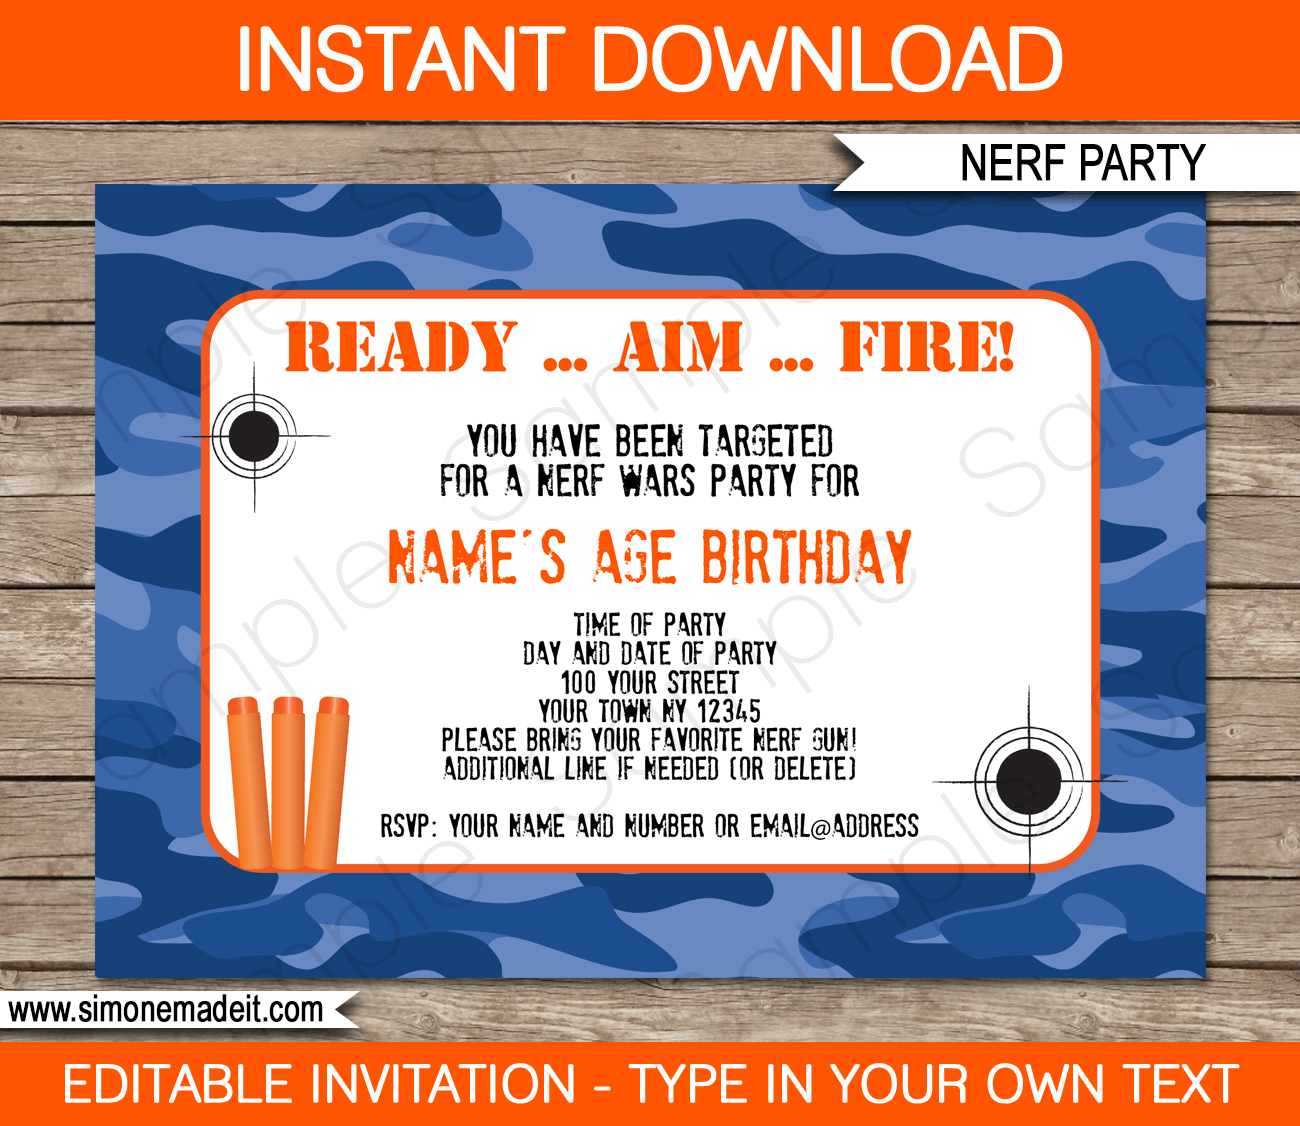 Nerf birthday party invitations editable template blue camo nerf birthday party invitations blue camo editable printable diy template instant download solutioingenieria Choice Image